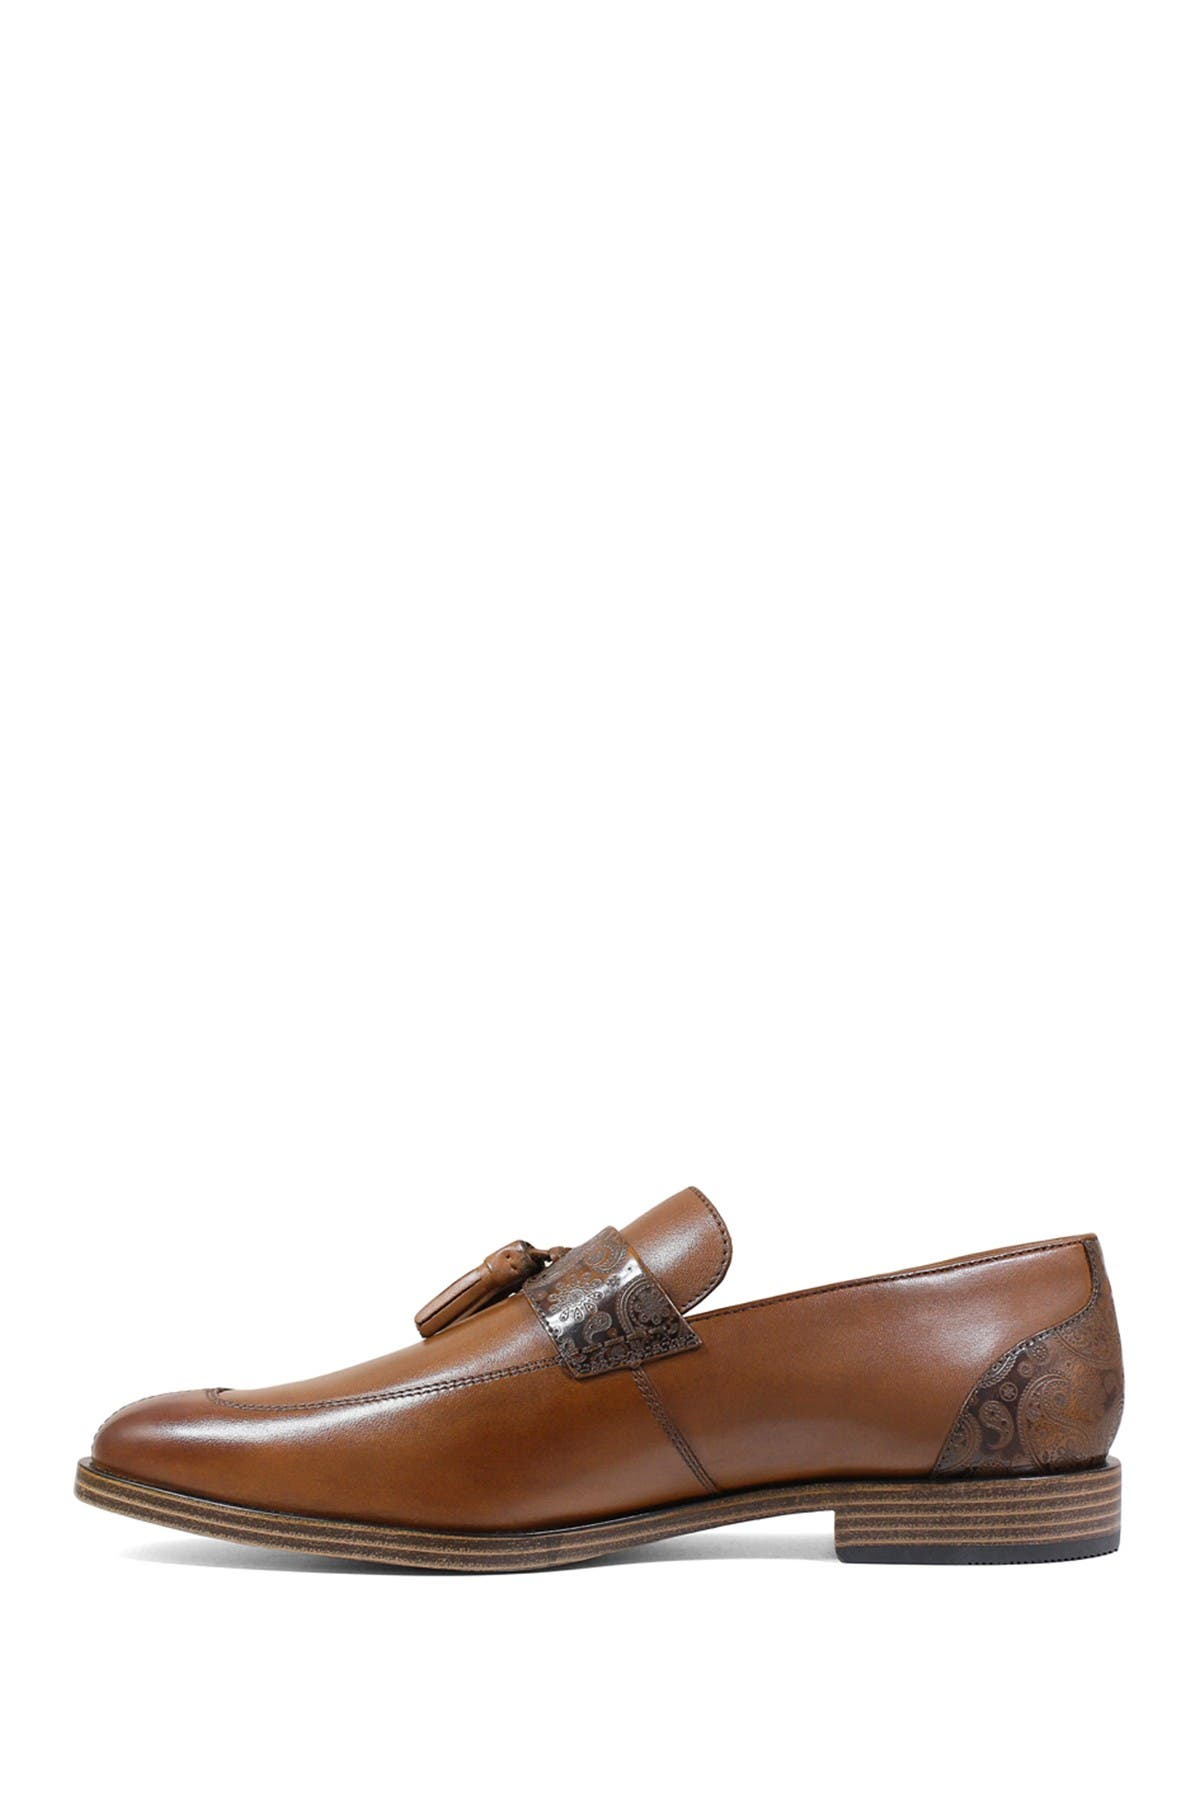 Image of Stacy Adams Quinby Paisley Leather Tassel Slip-On Loafer